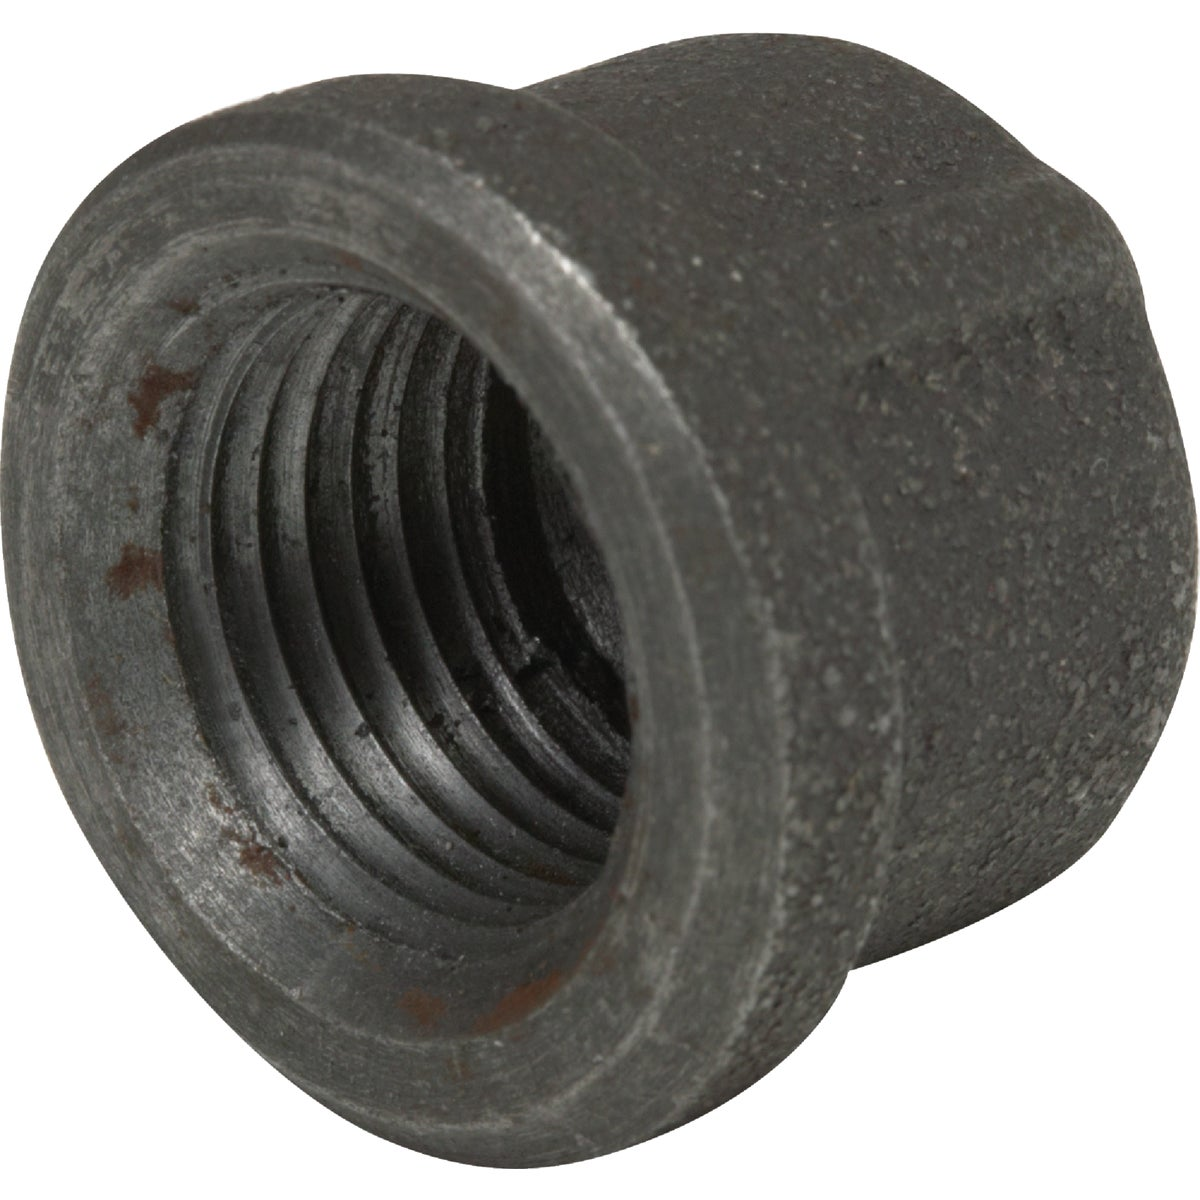 "1-1/2"" BLK CAP - 8700132403 by Anvil International"